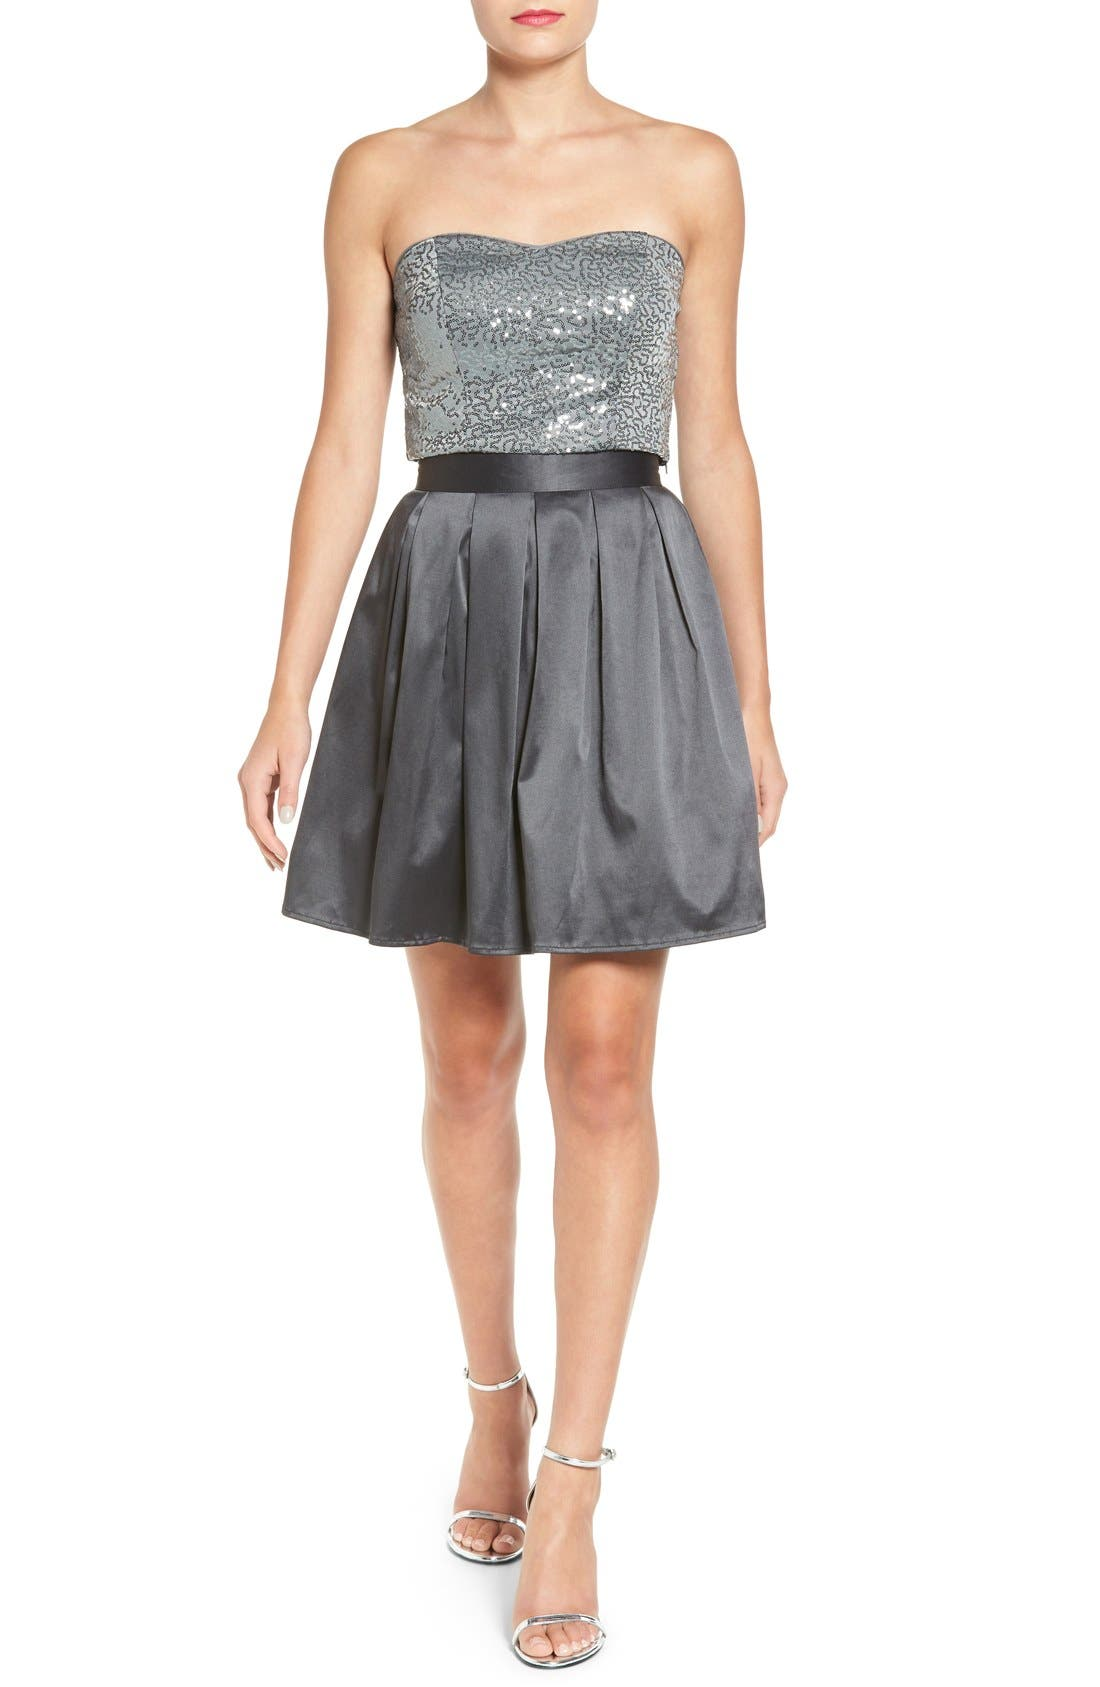 Alternate Image 1 Selected - Love, Nickie Lew Two-Piece Strapless Sequin Skater Dress